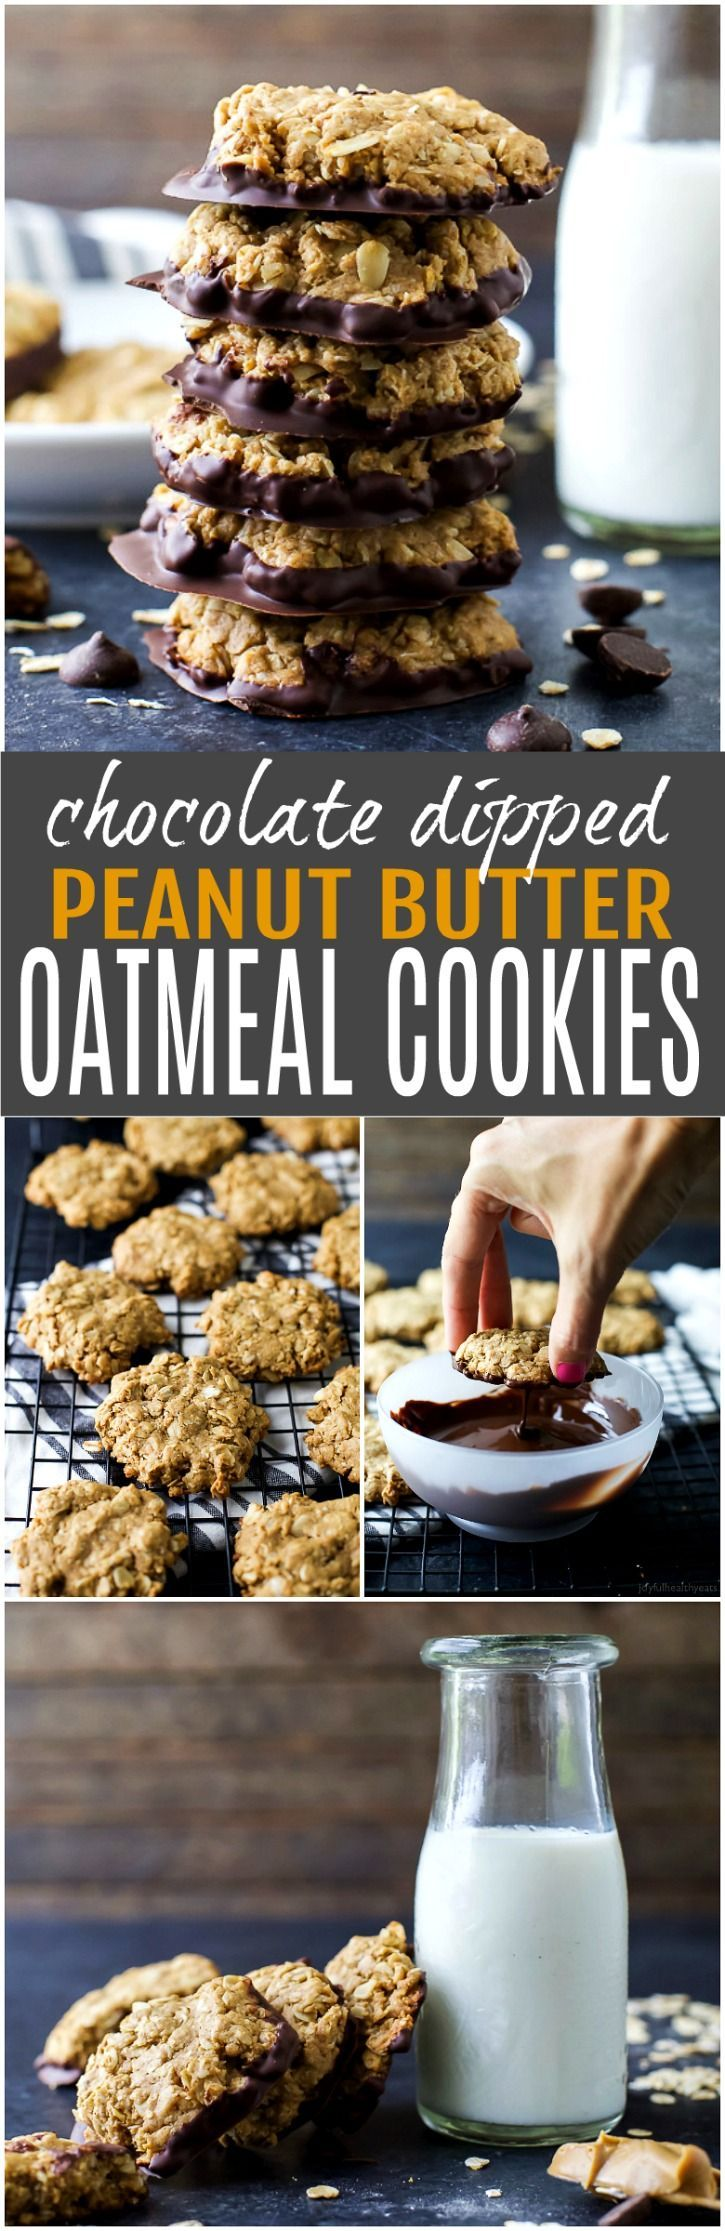 Soft & Chewy Healthy Oatmeal Peanut Butter Cookies dunked in Dark Chocolate - the perfect cookie recipe this holiday season. It's sure to be Santa's favorite!